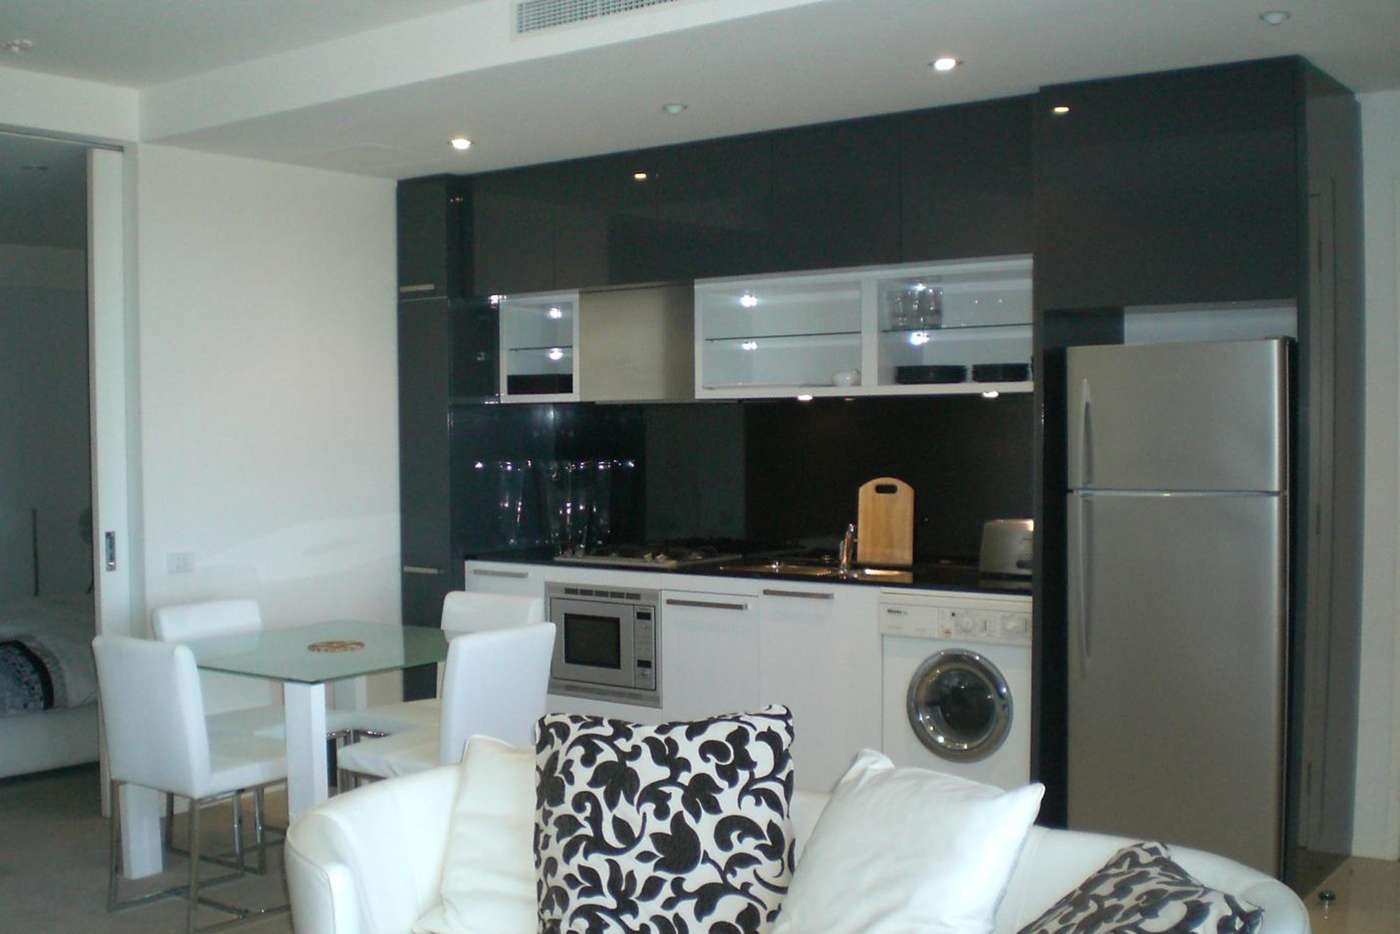 Main view of Homely apartment listing, 5003/7 Riverside Quay, Southbank VIC 3006